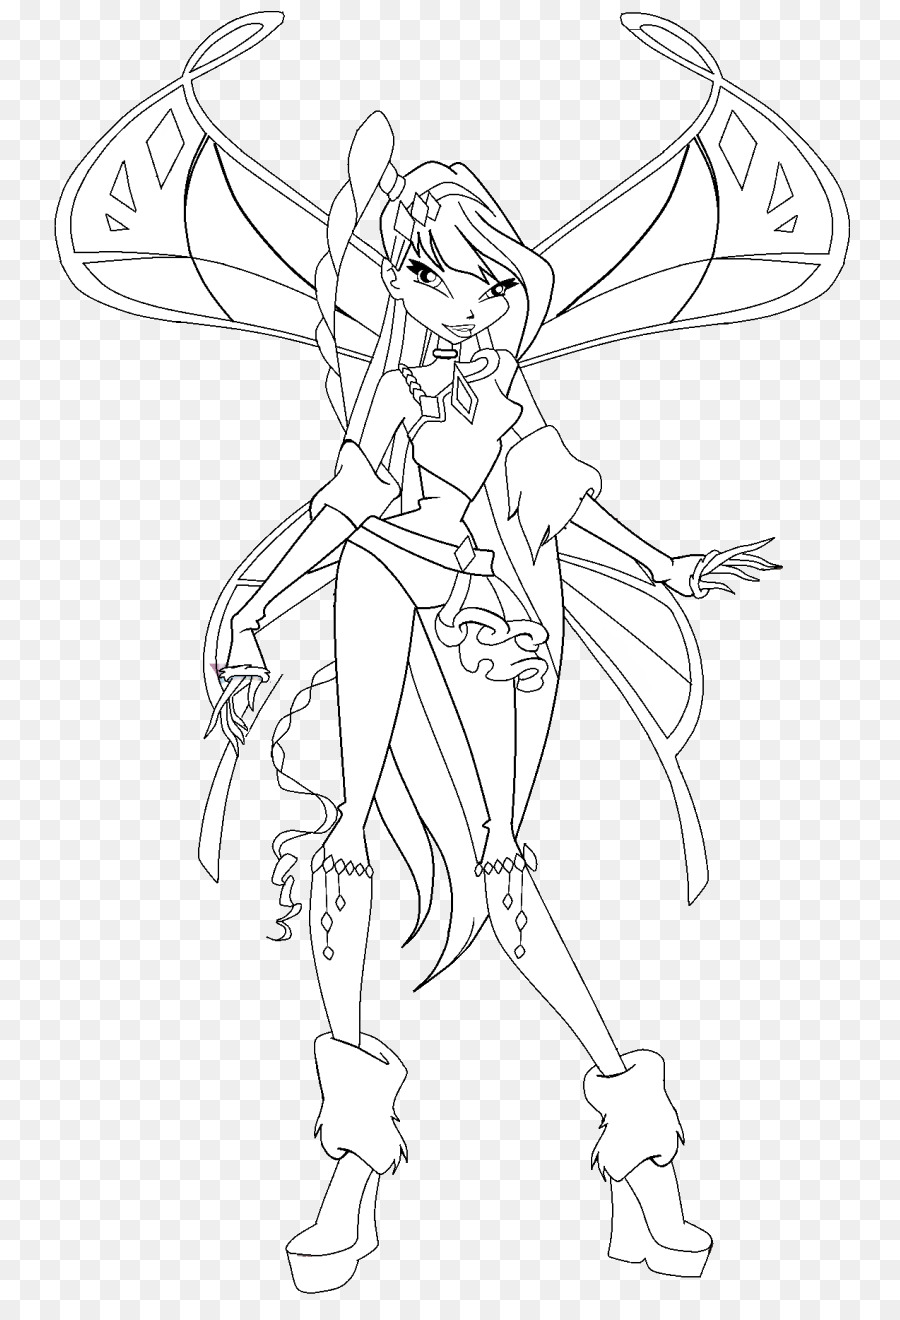 Musa winx coloring pages | Super coloring pages, Cartoon coloring ... | 1320x900